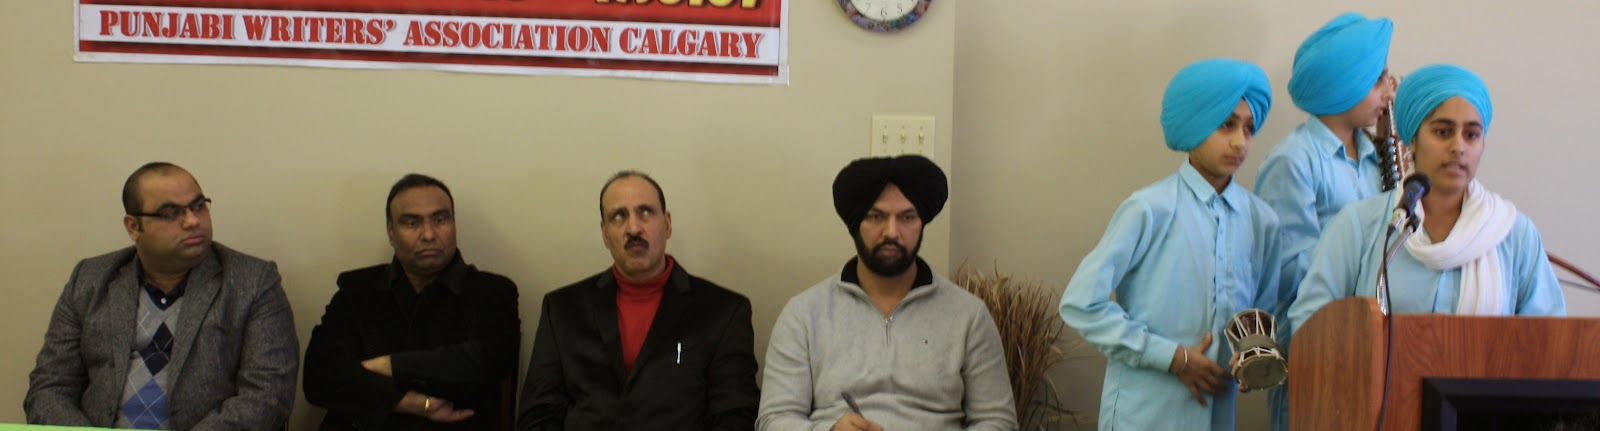 Children Singing Kavishari during the meeting of Punjabi Writers' Association, Calgary